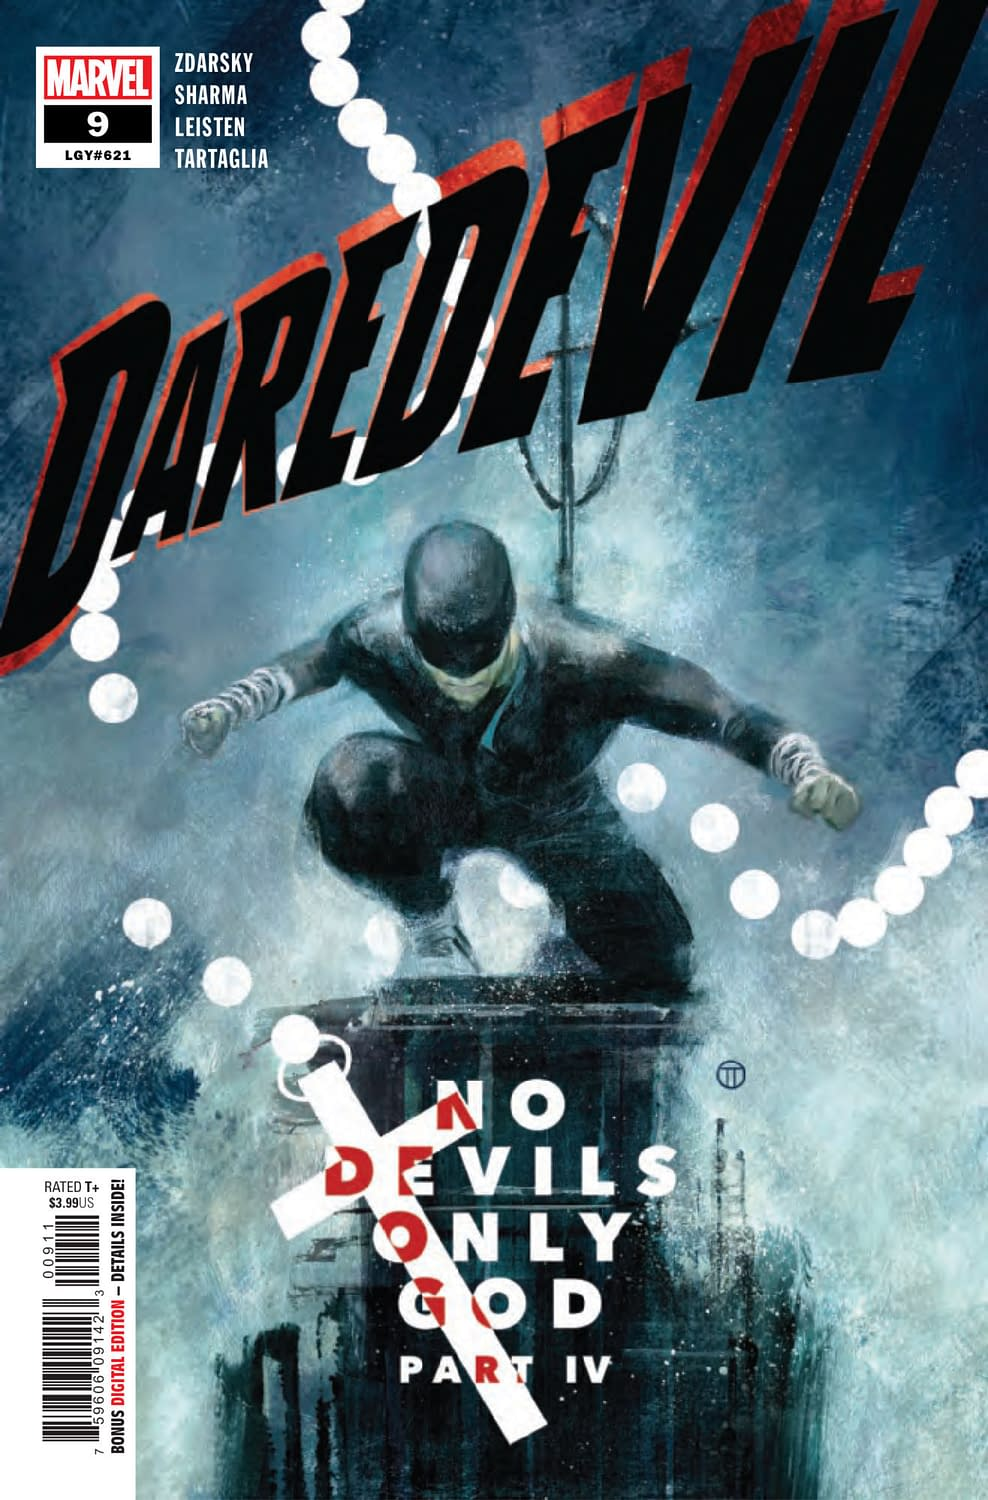 Does God Exist? Reed Richards Reveals All in Daredevil #9